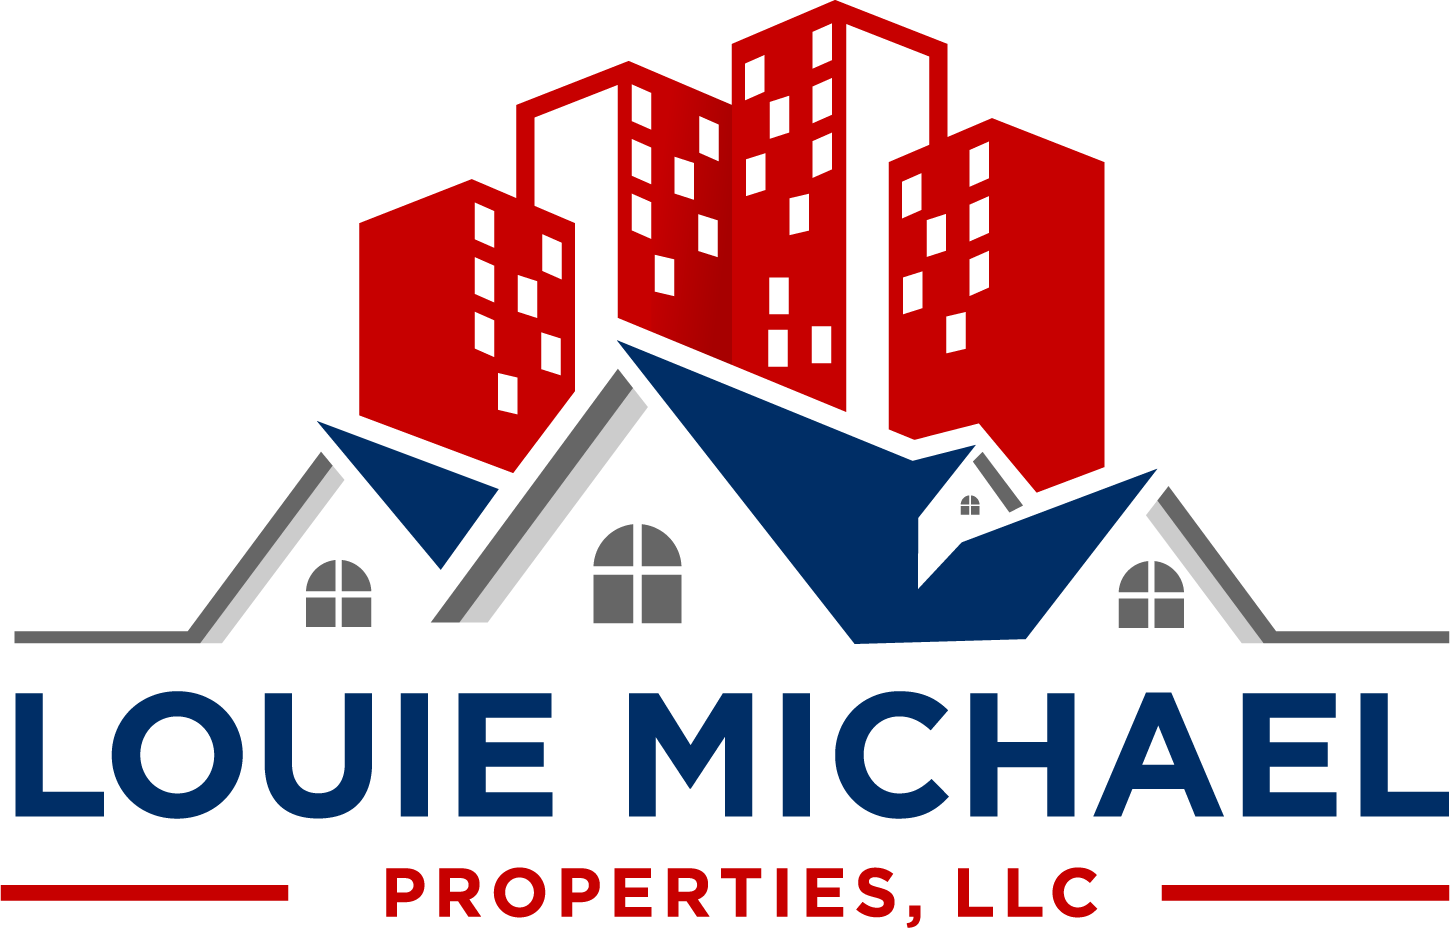 Louie Michael Properties, LLC